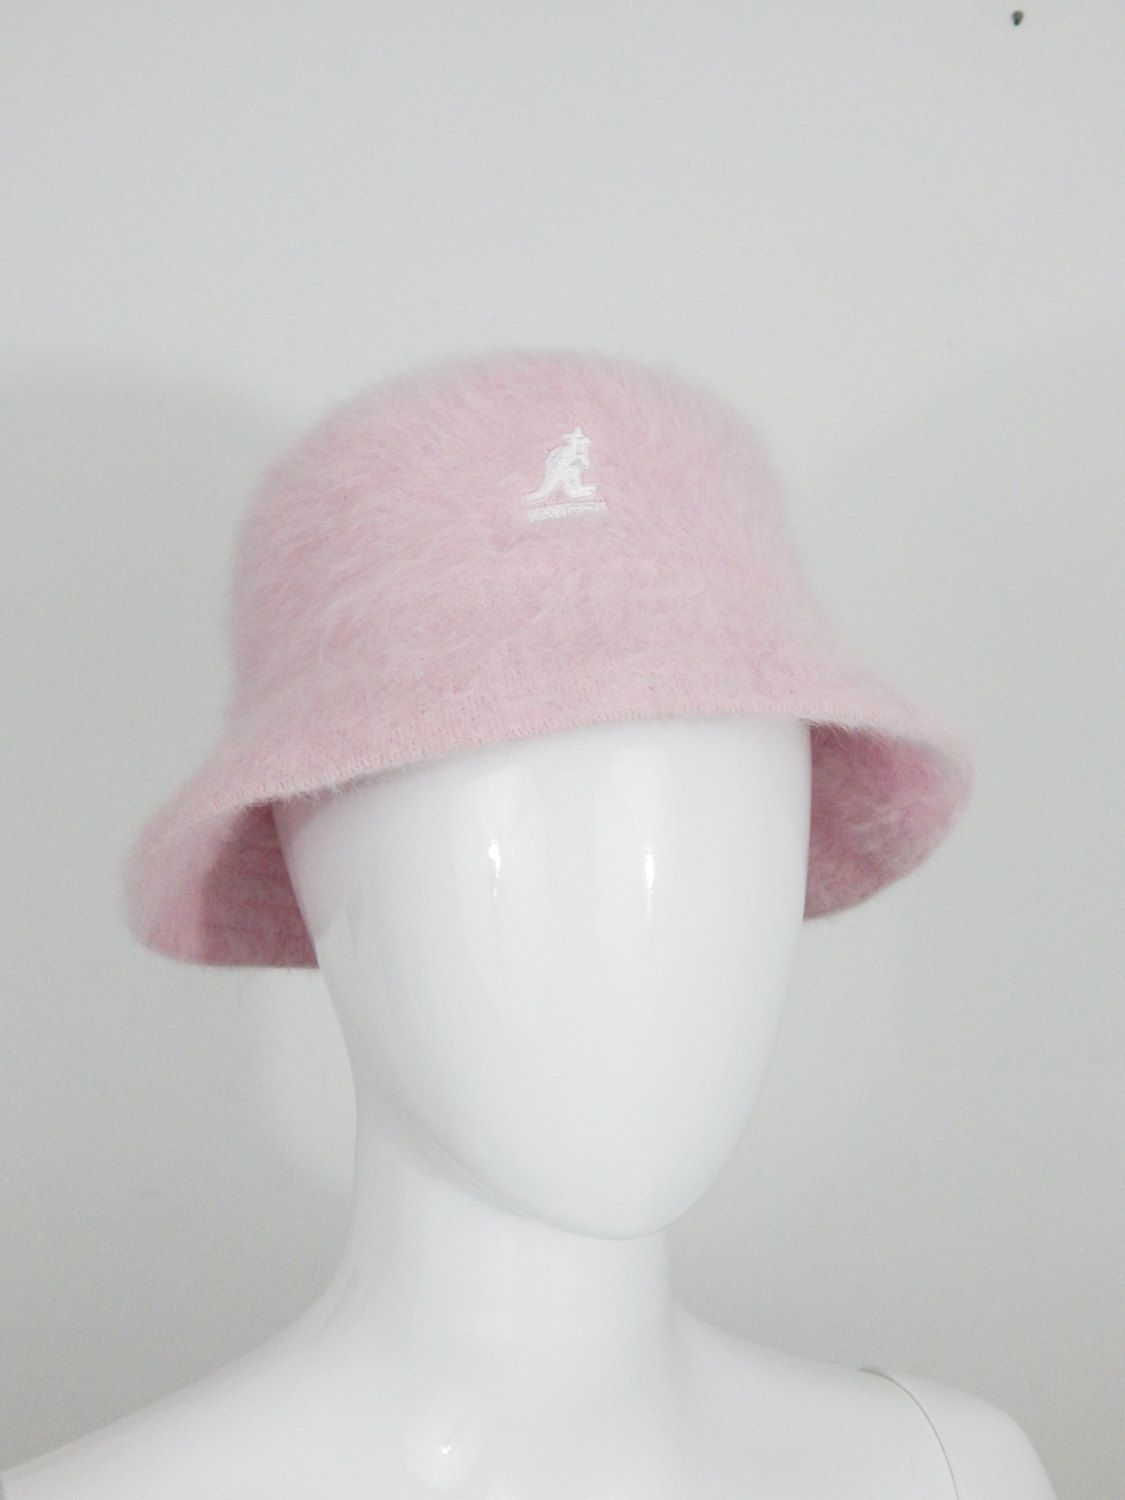 520bb8fabd7 Pink furry KANGOL Furgora Lahinch90s vintage bucket hat size Medium bucket  hat men women unisex by GLITTERSTREET on Etsy